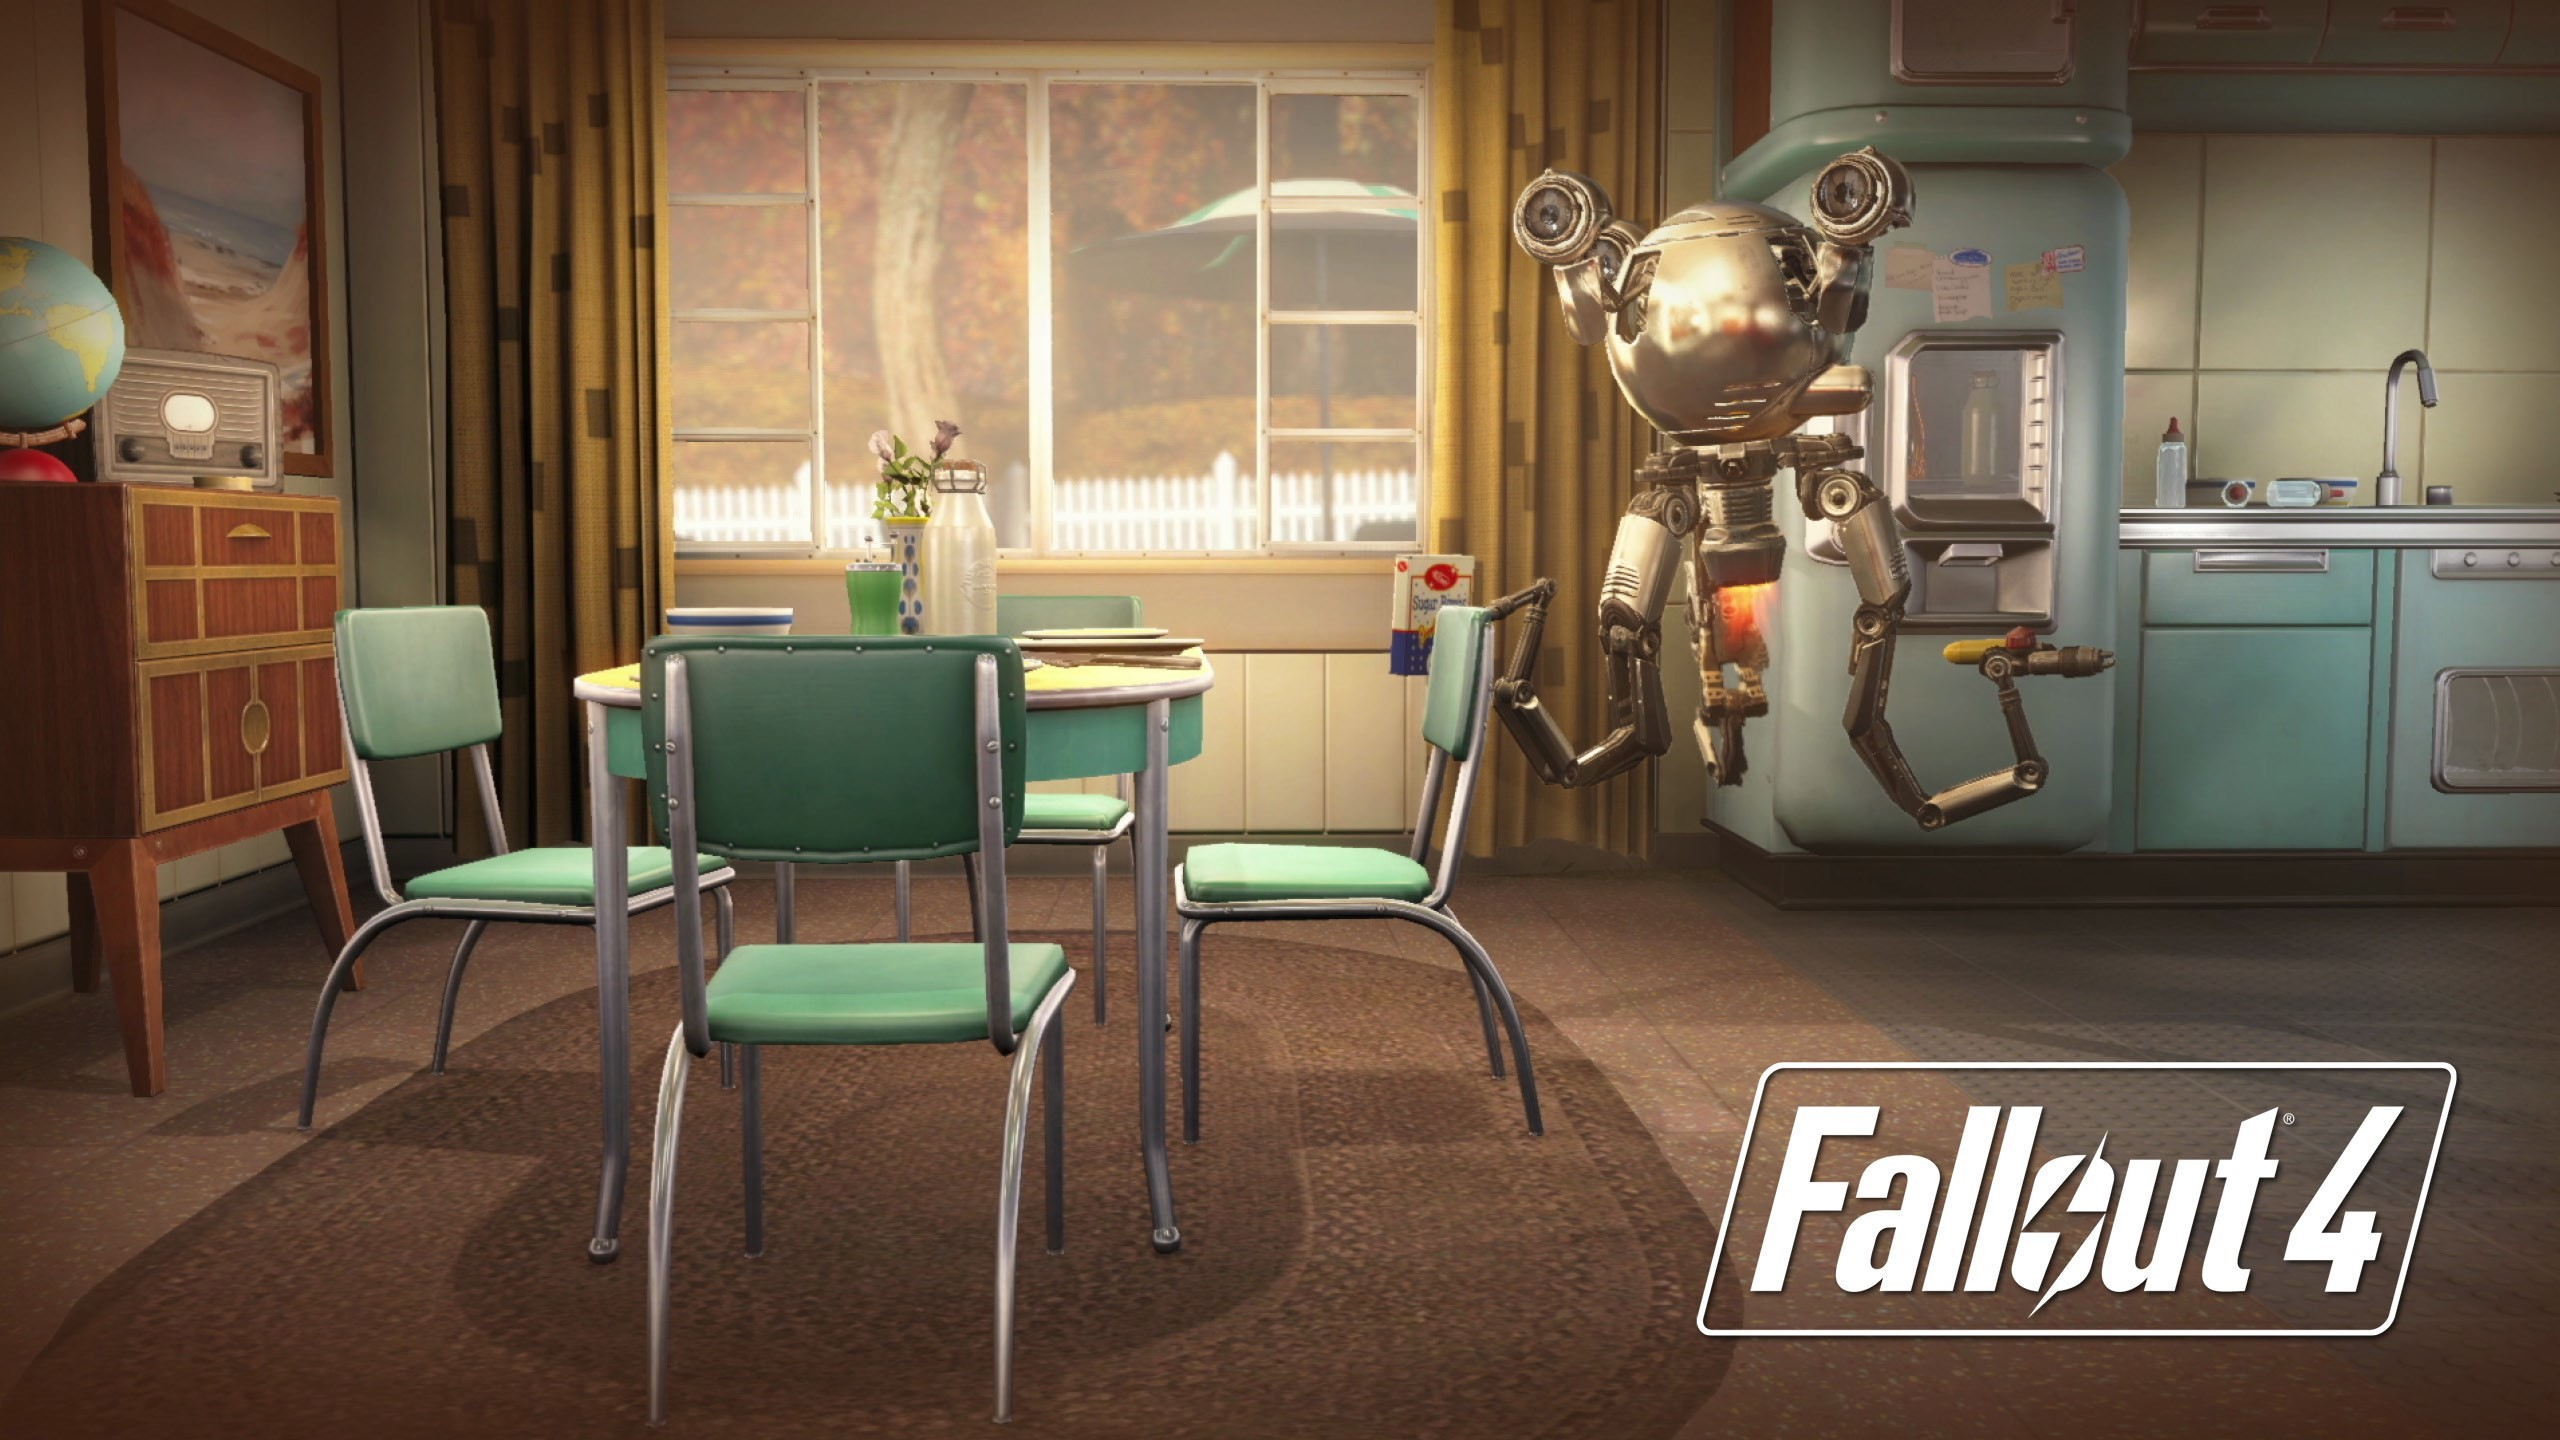 px Fallout 4 wallpaper – Full HD Wallpapers, Photos by Ned  Sinclair